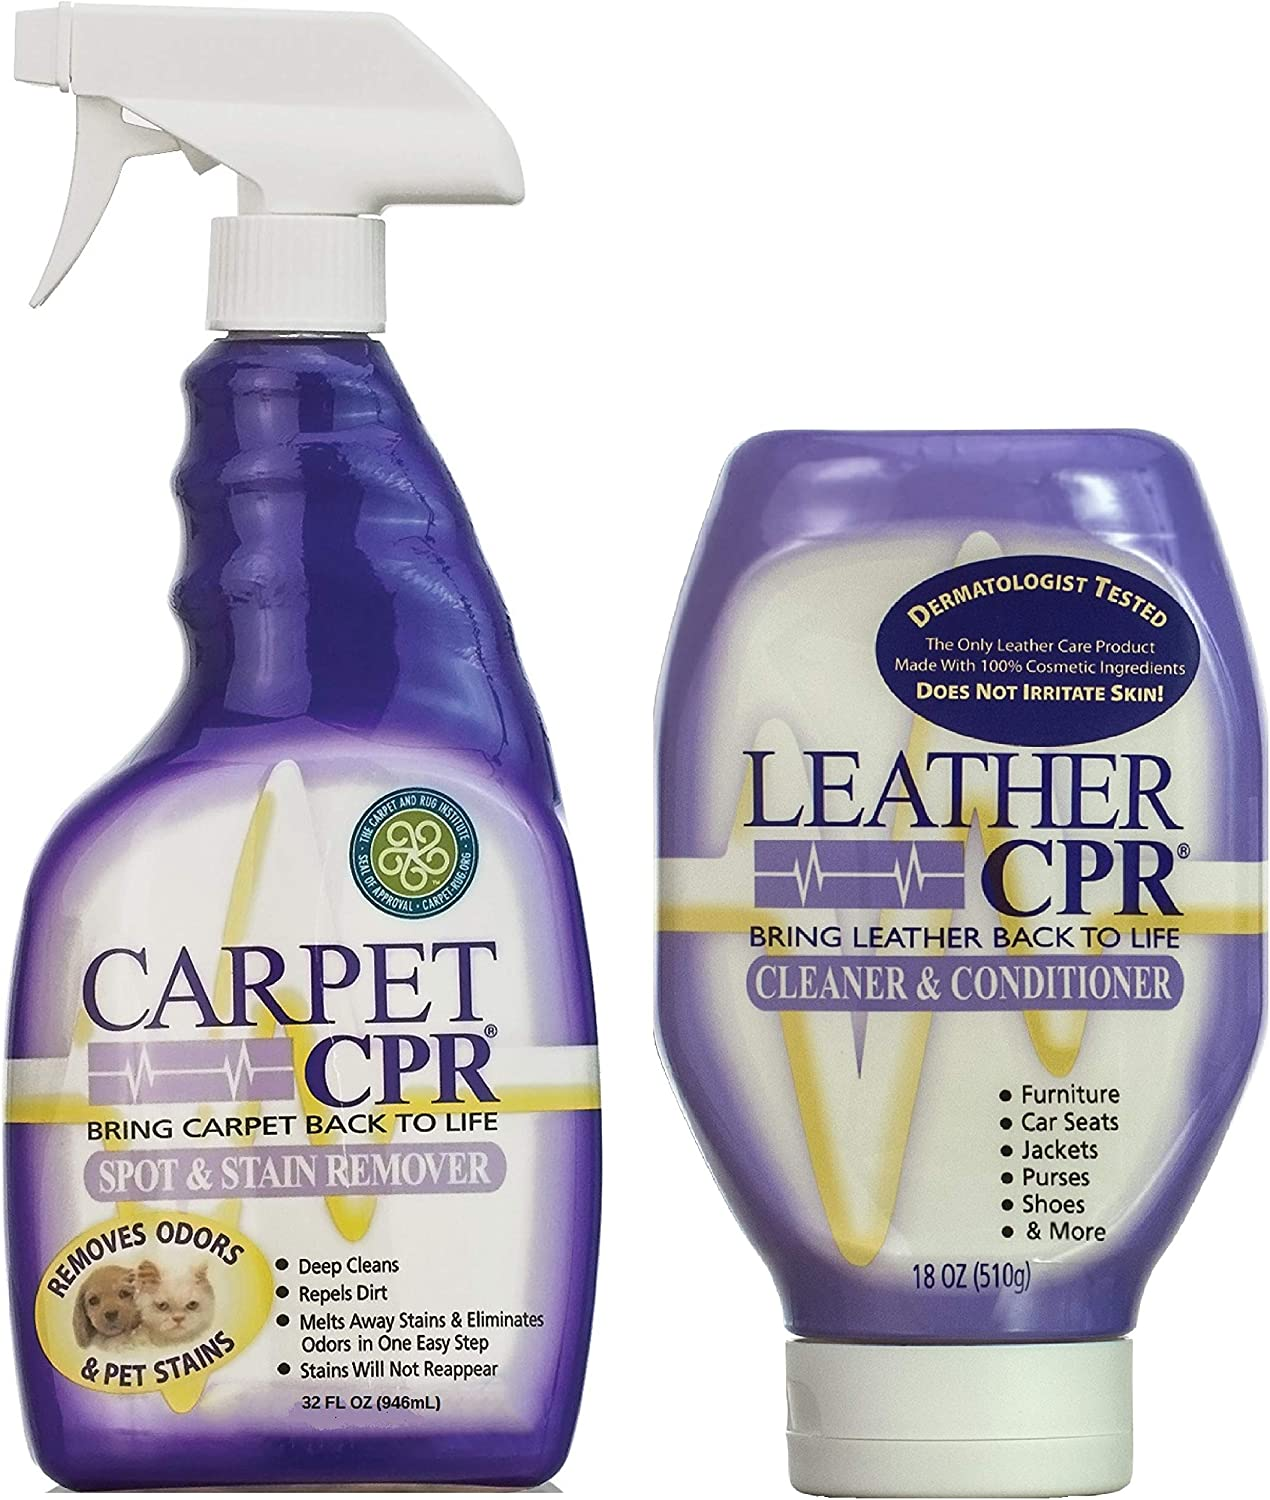 Selling and selling CPR Deluxe Combo Packs Sizes 2 Pack Carpet Leather